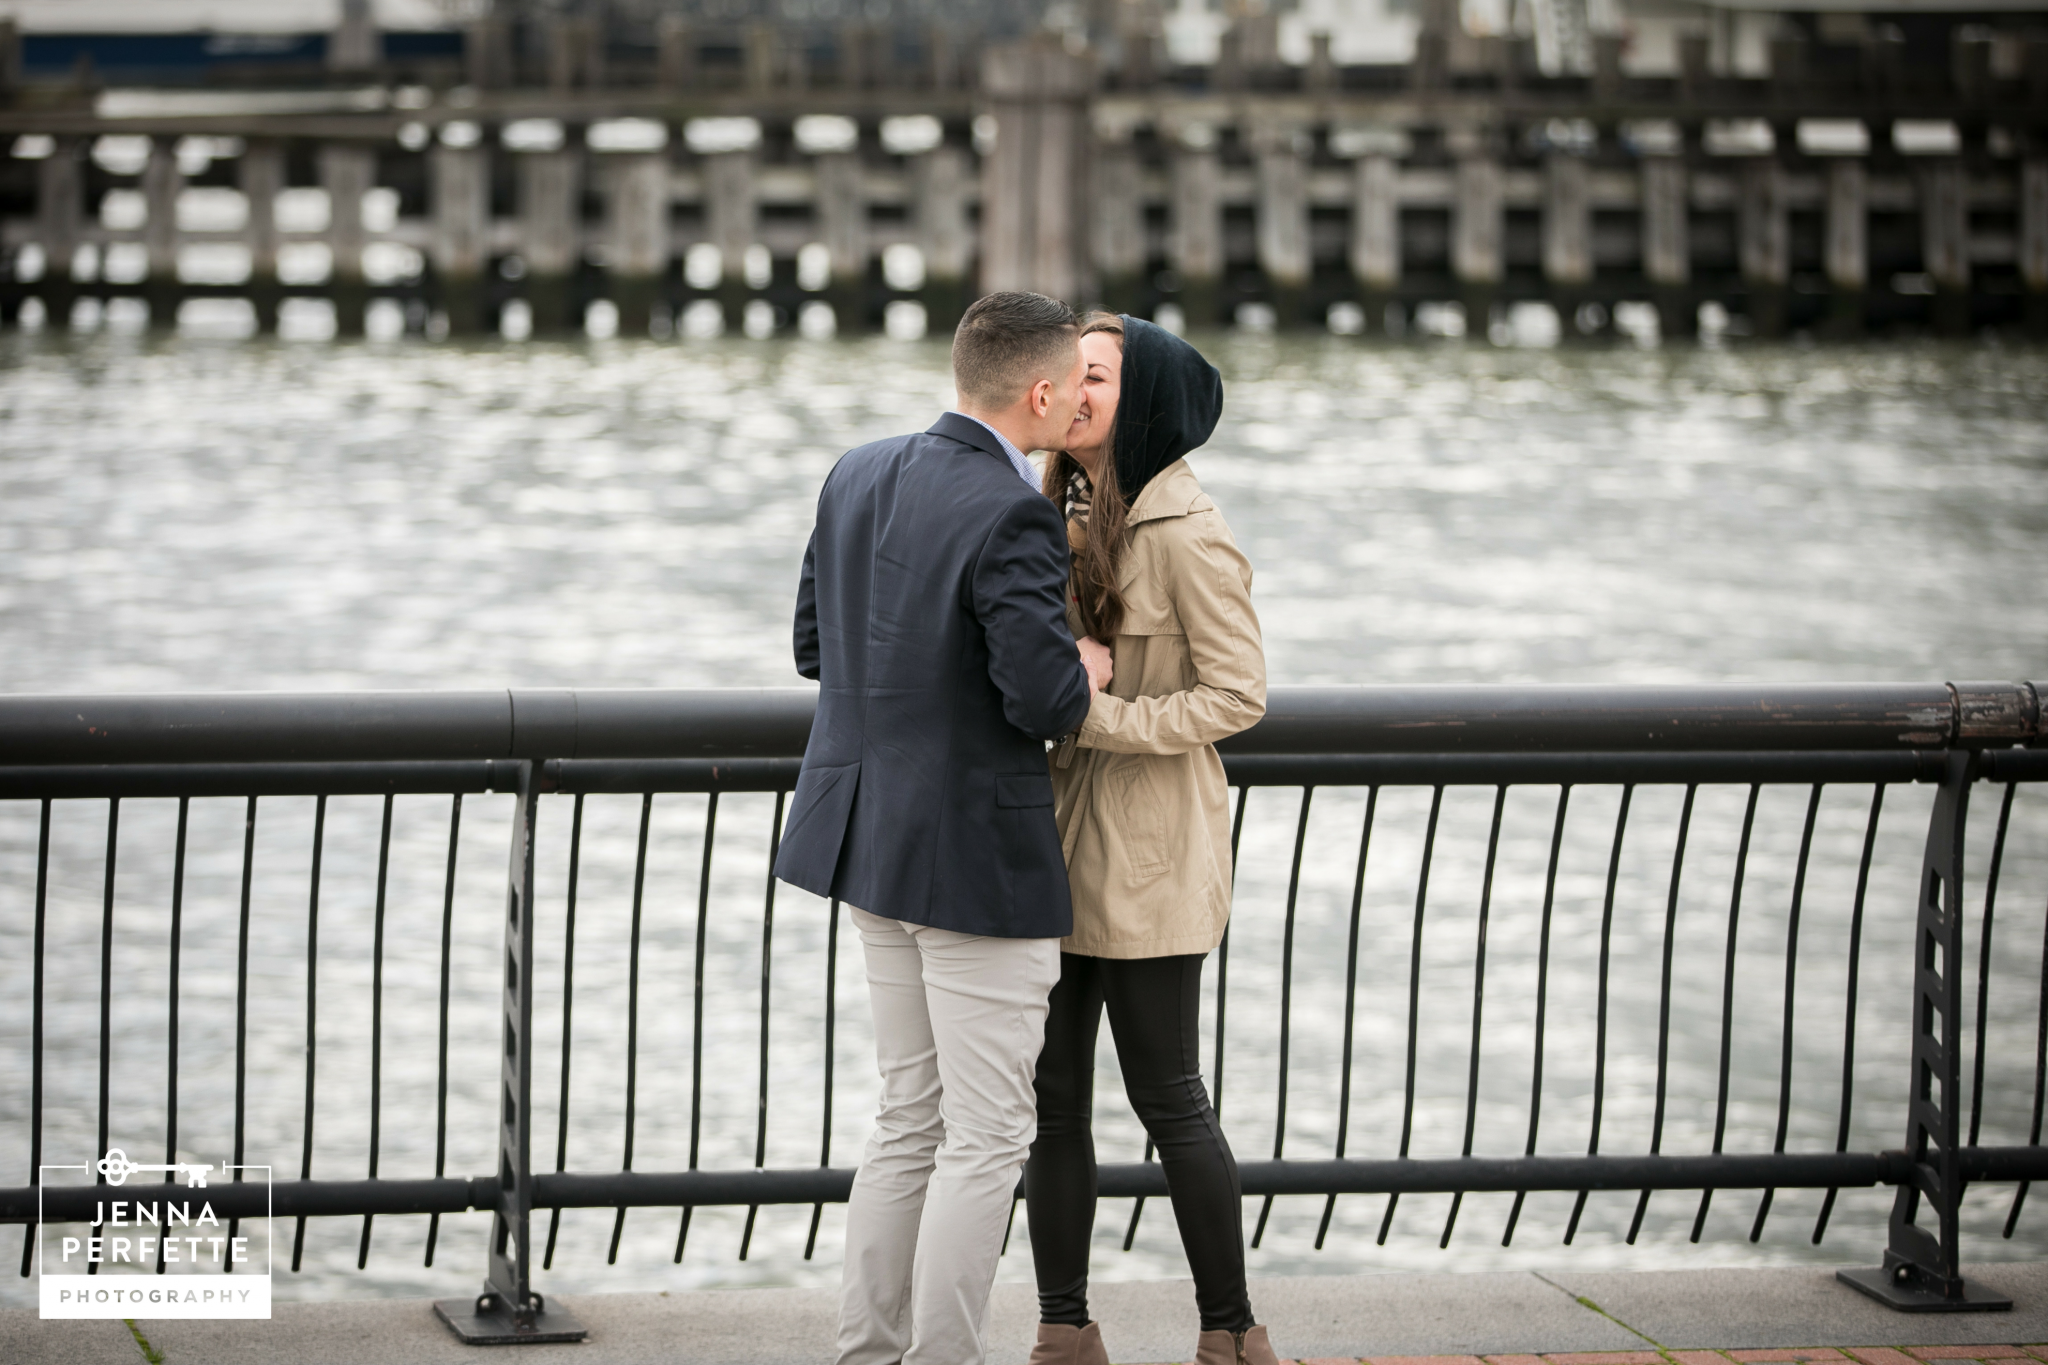 Hoboken Waterfront Proposal Photos Best New Jersey Photographer (4)